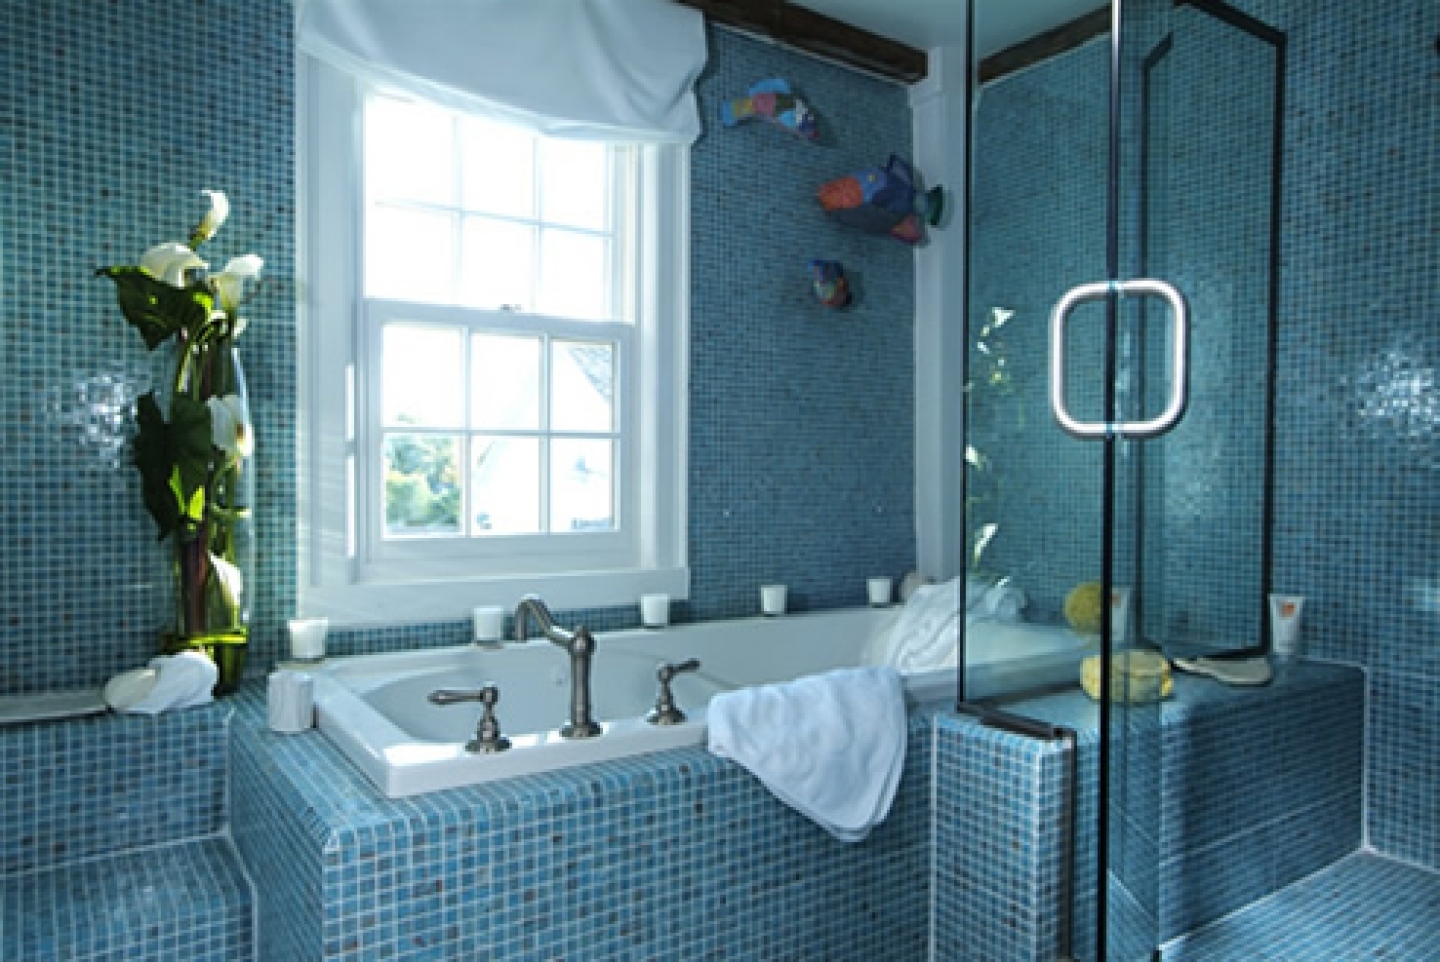 40 vintage blue bathroom tiles ideas and pictures for Great bathroom ideas